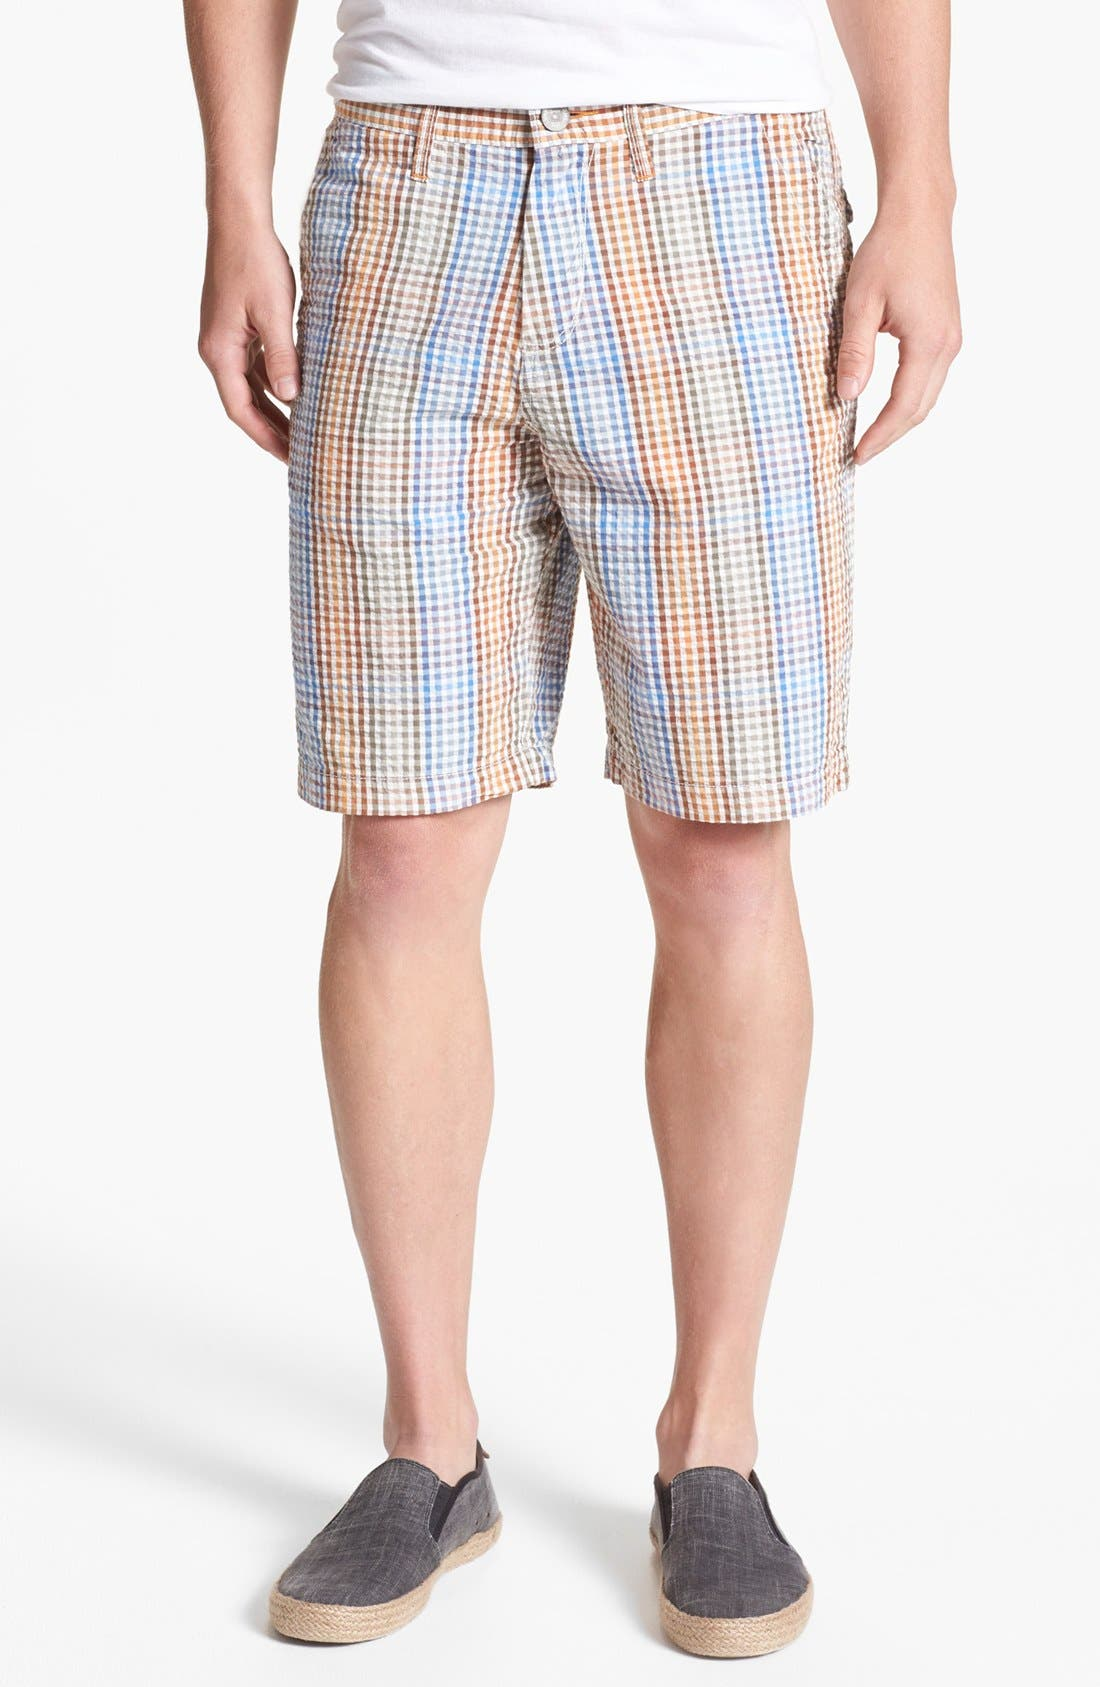 Alternate Image 1 Selected - Tommy Bahama Denim 'Reef Ridge' Seersucker Shorts